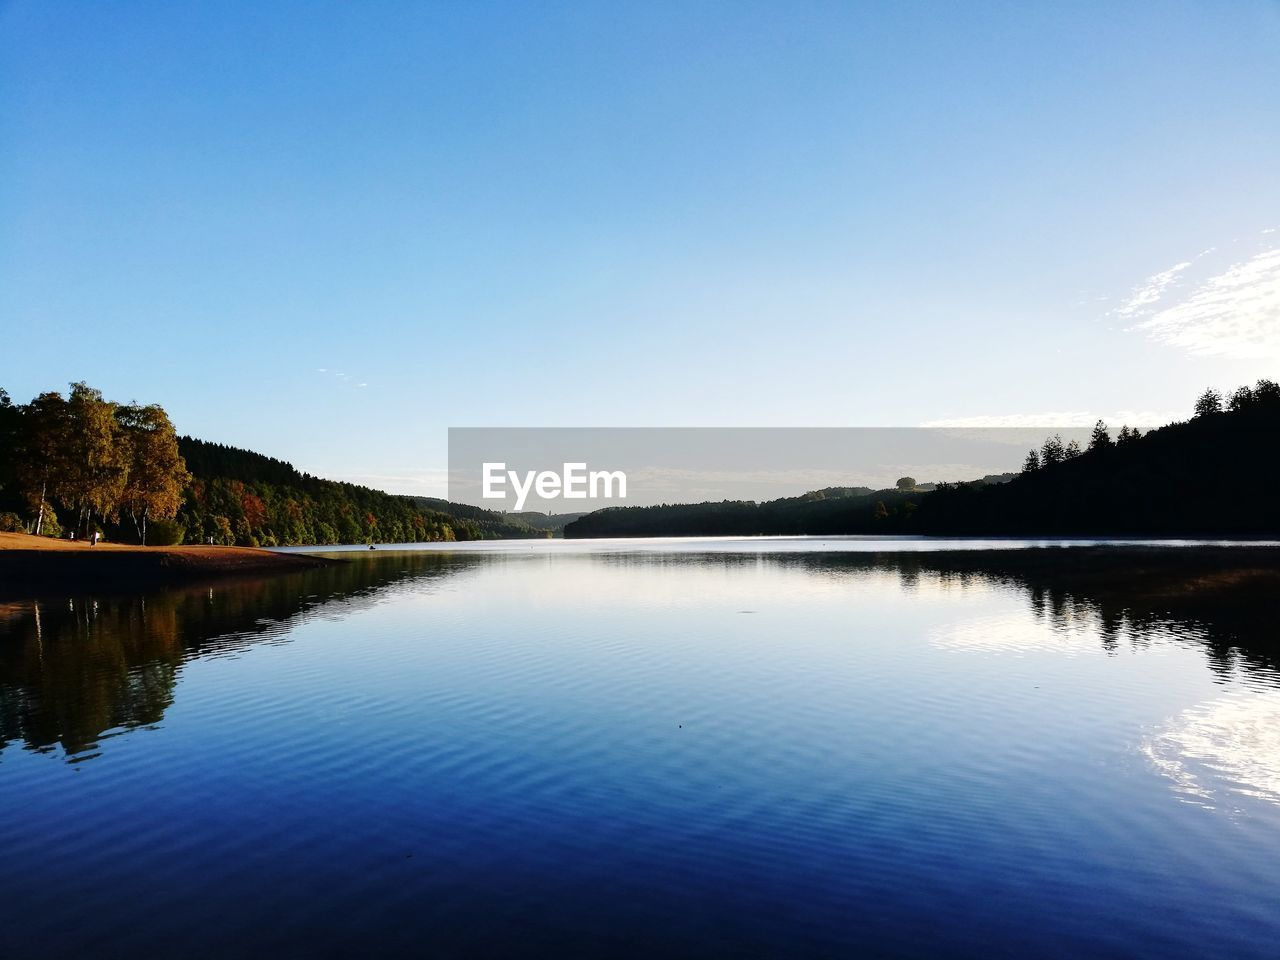 water, sky, tranquility, scenics - nature, tranquil scene, beauty in nature, lake, reflection, nature, waterfront, copy space, idyllic, no people, clear sky, non-urban scene, blue, tree, day, outdoors